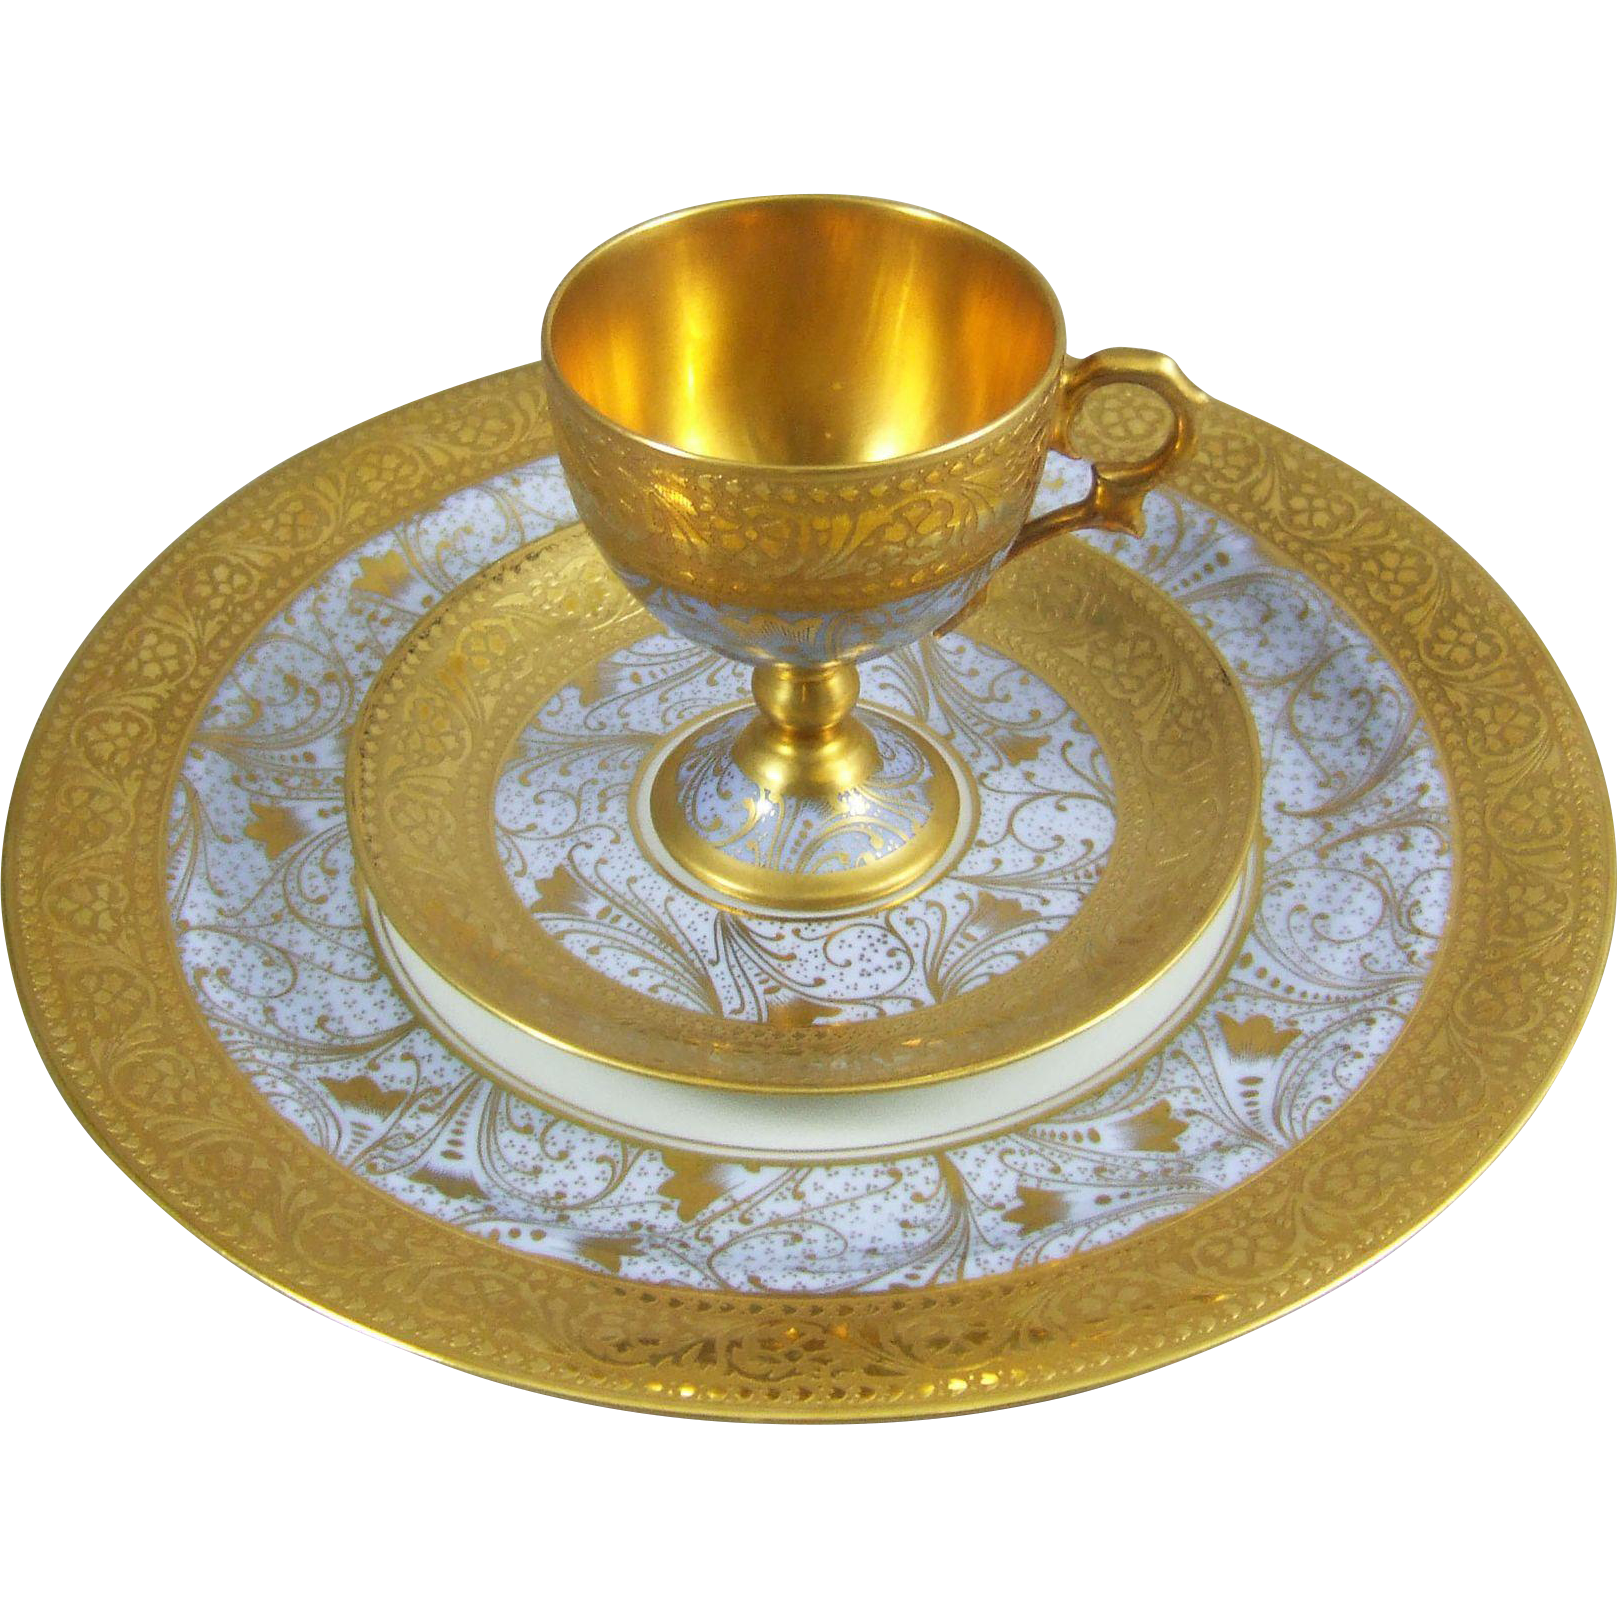 Limoges Unic Paris -  Gold Dore Inlay Porcelain Demitasse Cup Saucer & Plate